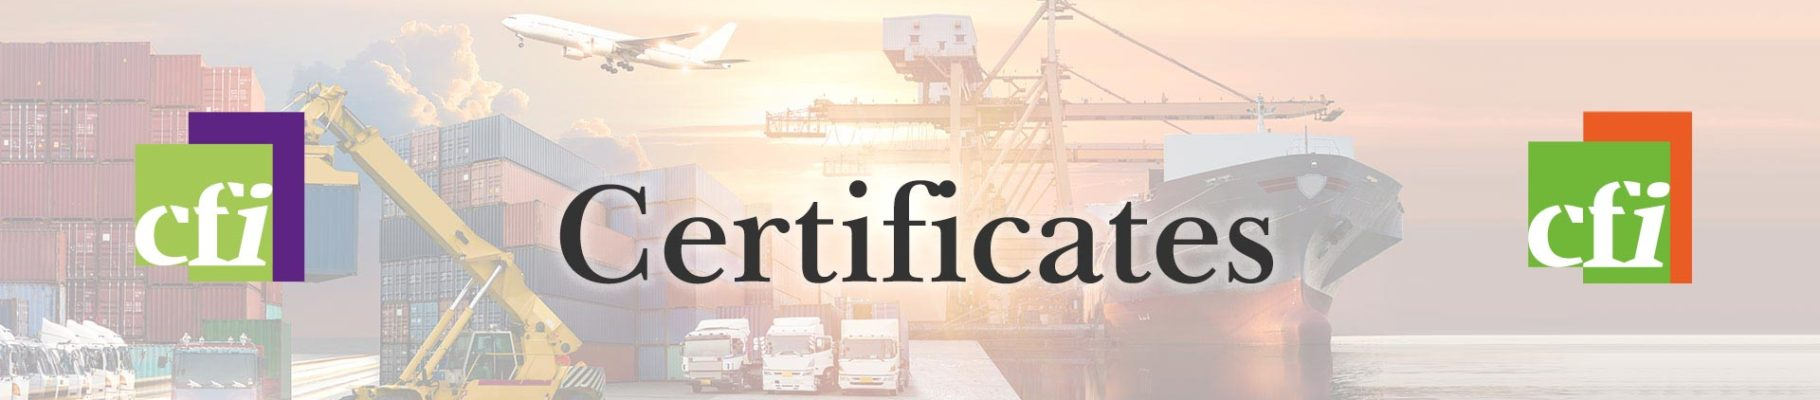 certificates - cyberfreight international & pharmalogisticsl